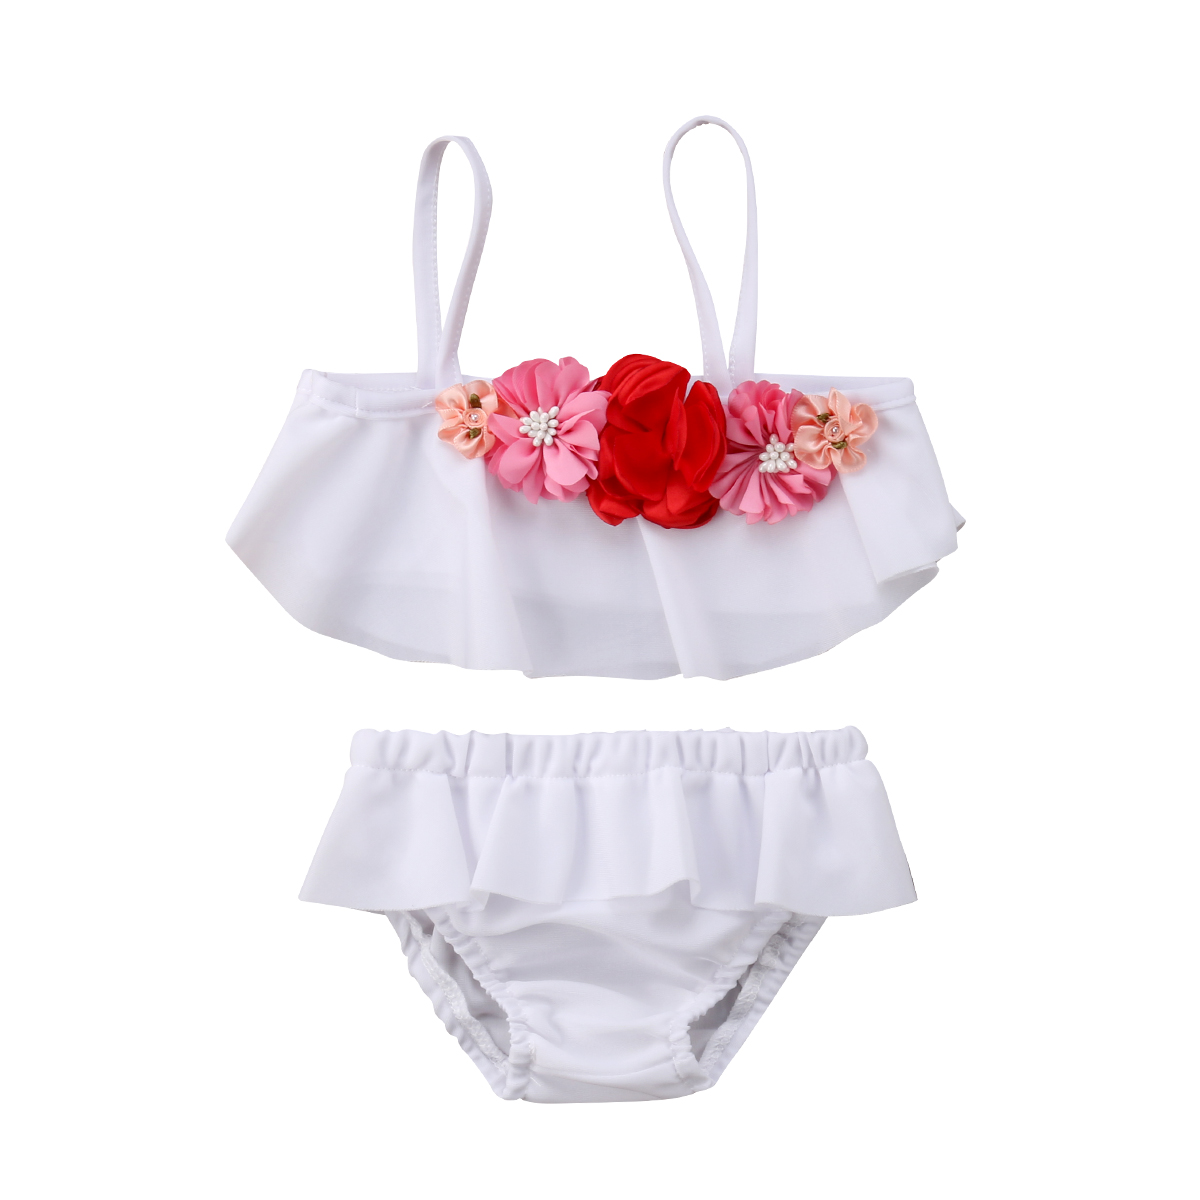 2Pcs Summer Kid Baby Girl Floral White Swimming Bikini Clothing Set Swimsuit Swimwear Ba ...